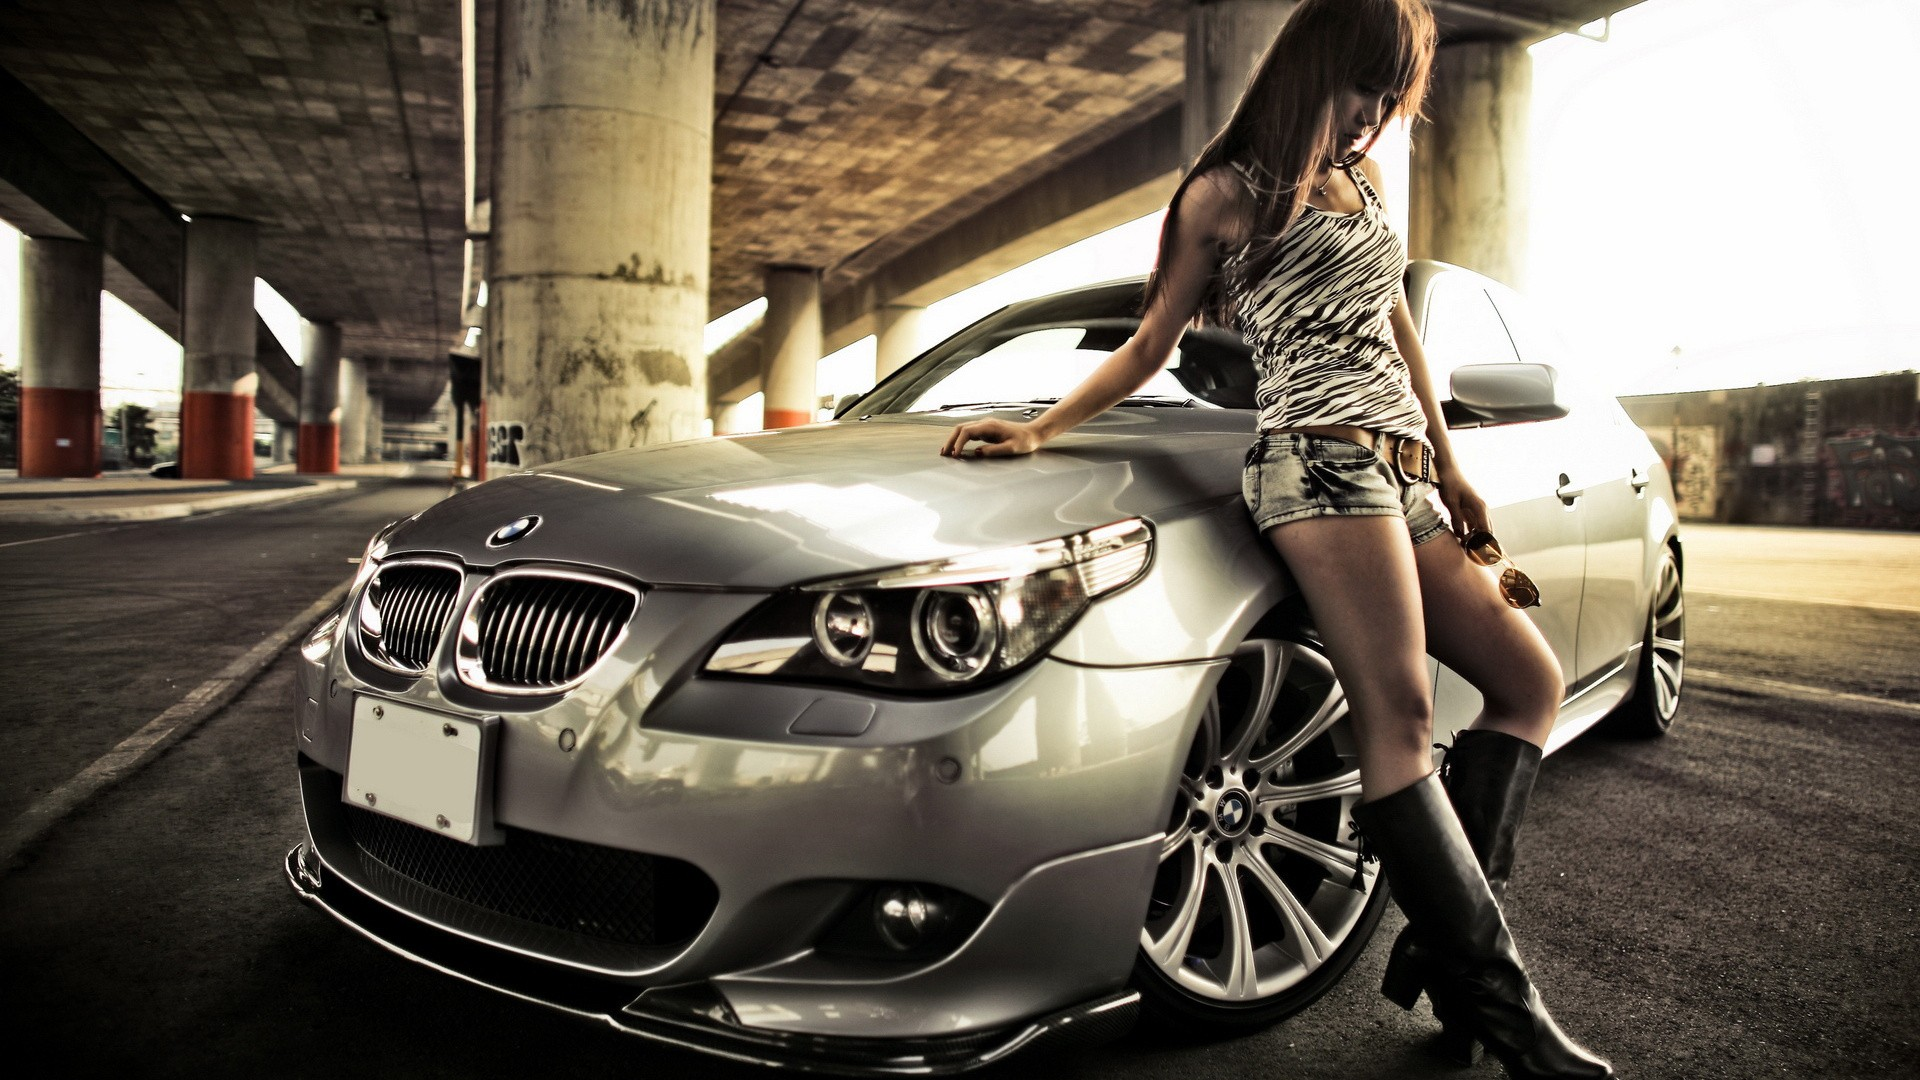 Best BMW Wallpapers For Best BMW Wallpapers For Desktop U0026 Tablets In HD For  Download